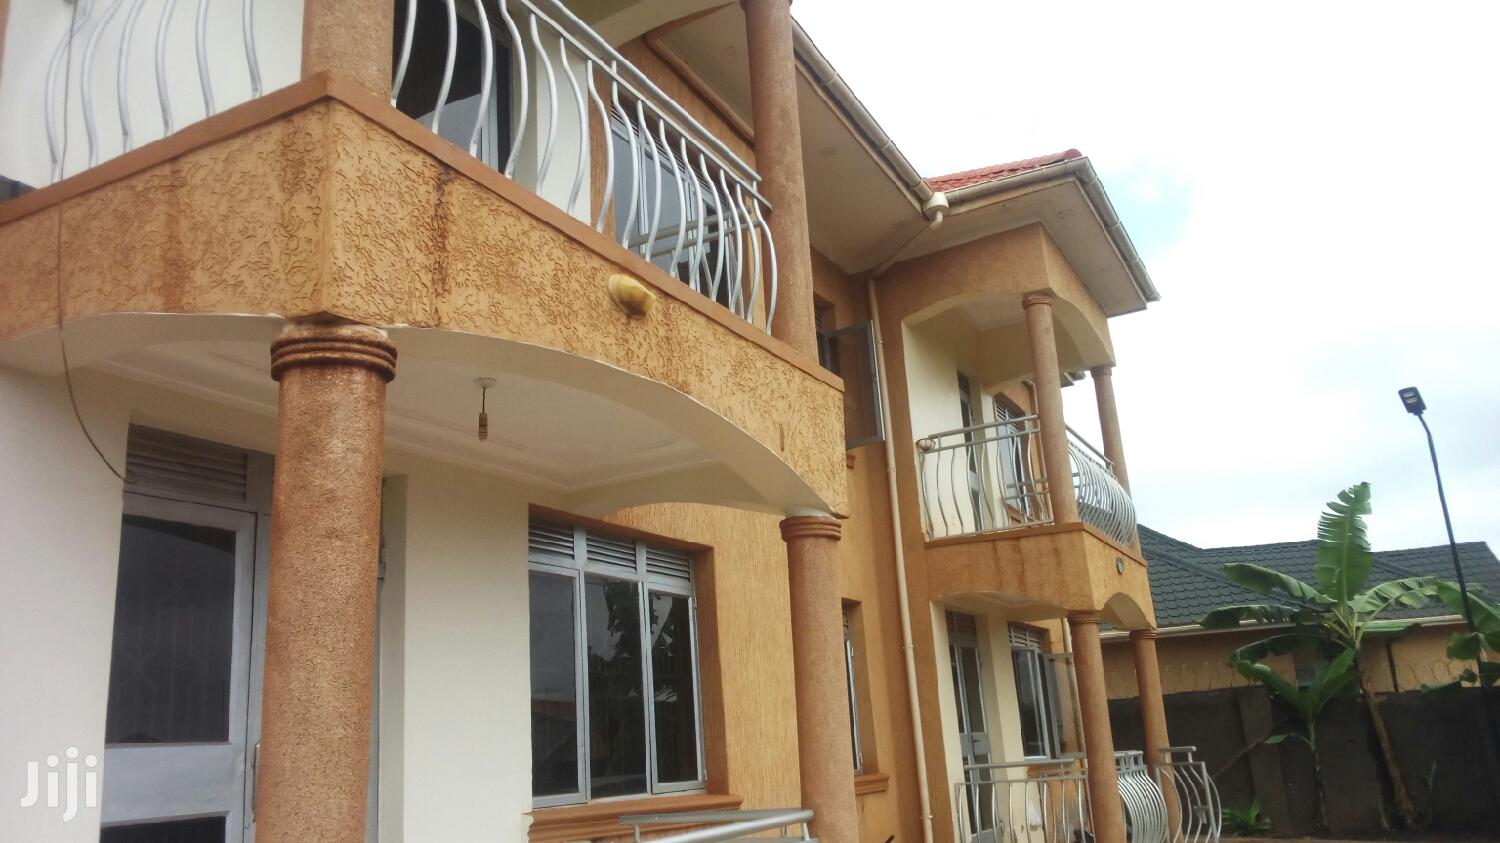 Amazing 3bedroom 2bathroom Duplex in Kira Town | Houses & Apartments For Rent for sale in Kampala, Central Region, Uganda